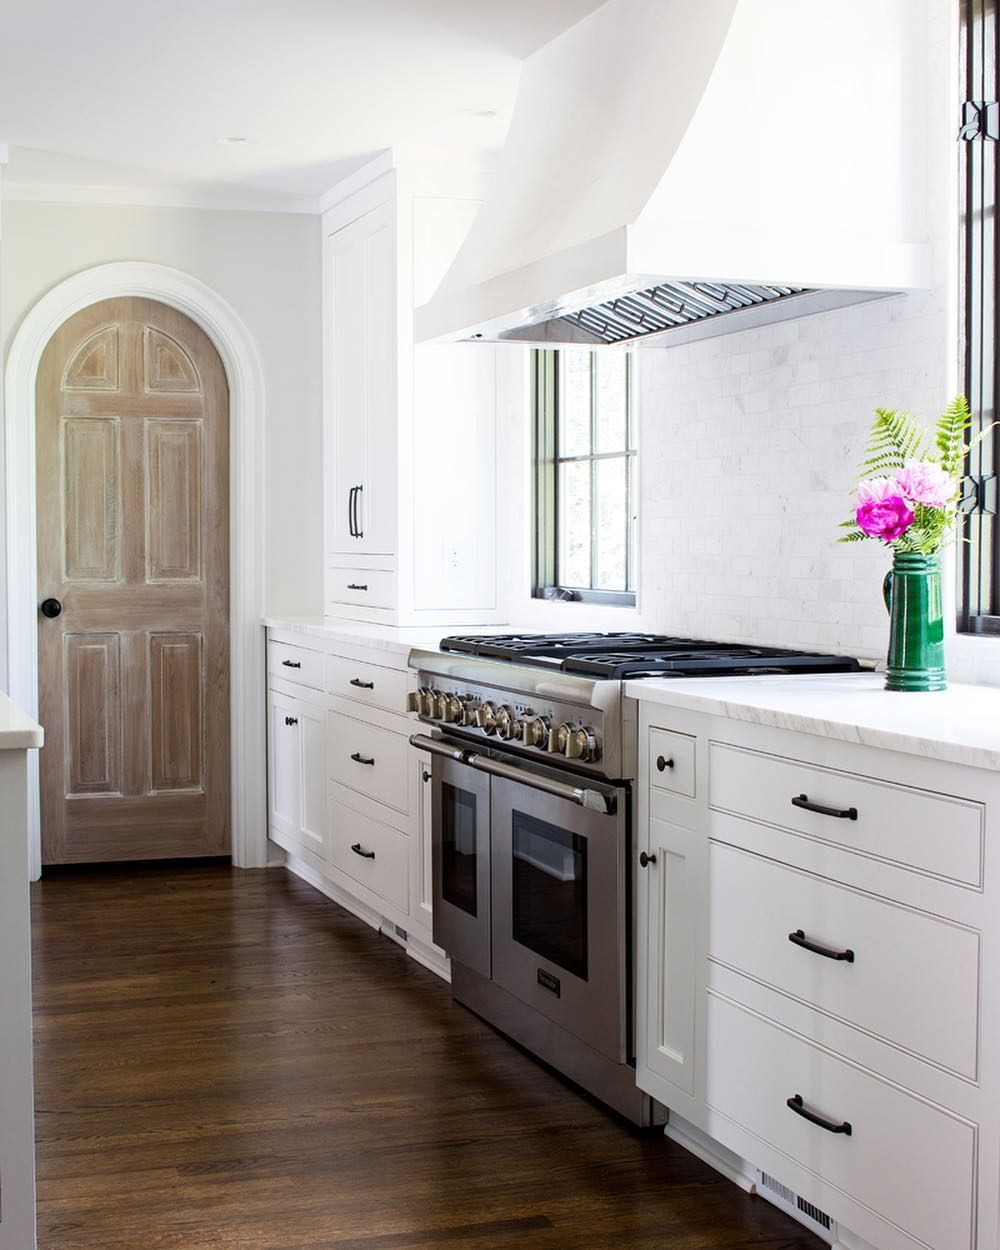 Natural wood pantry door in white kitchen remodel in